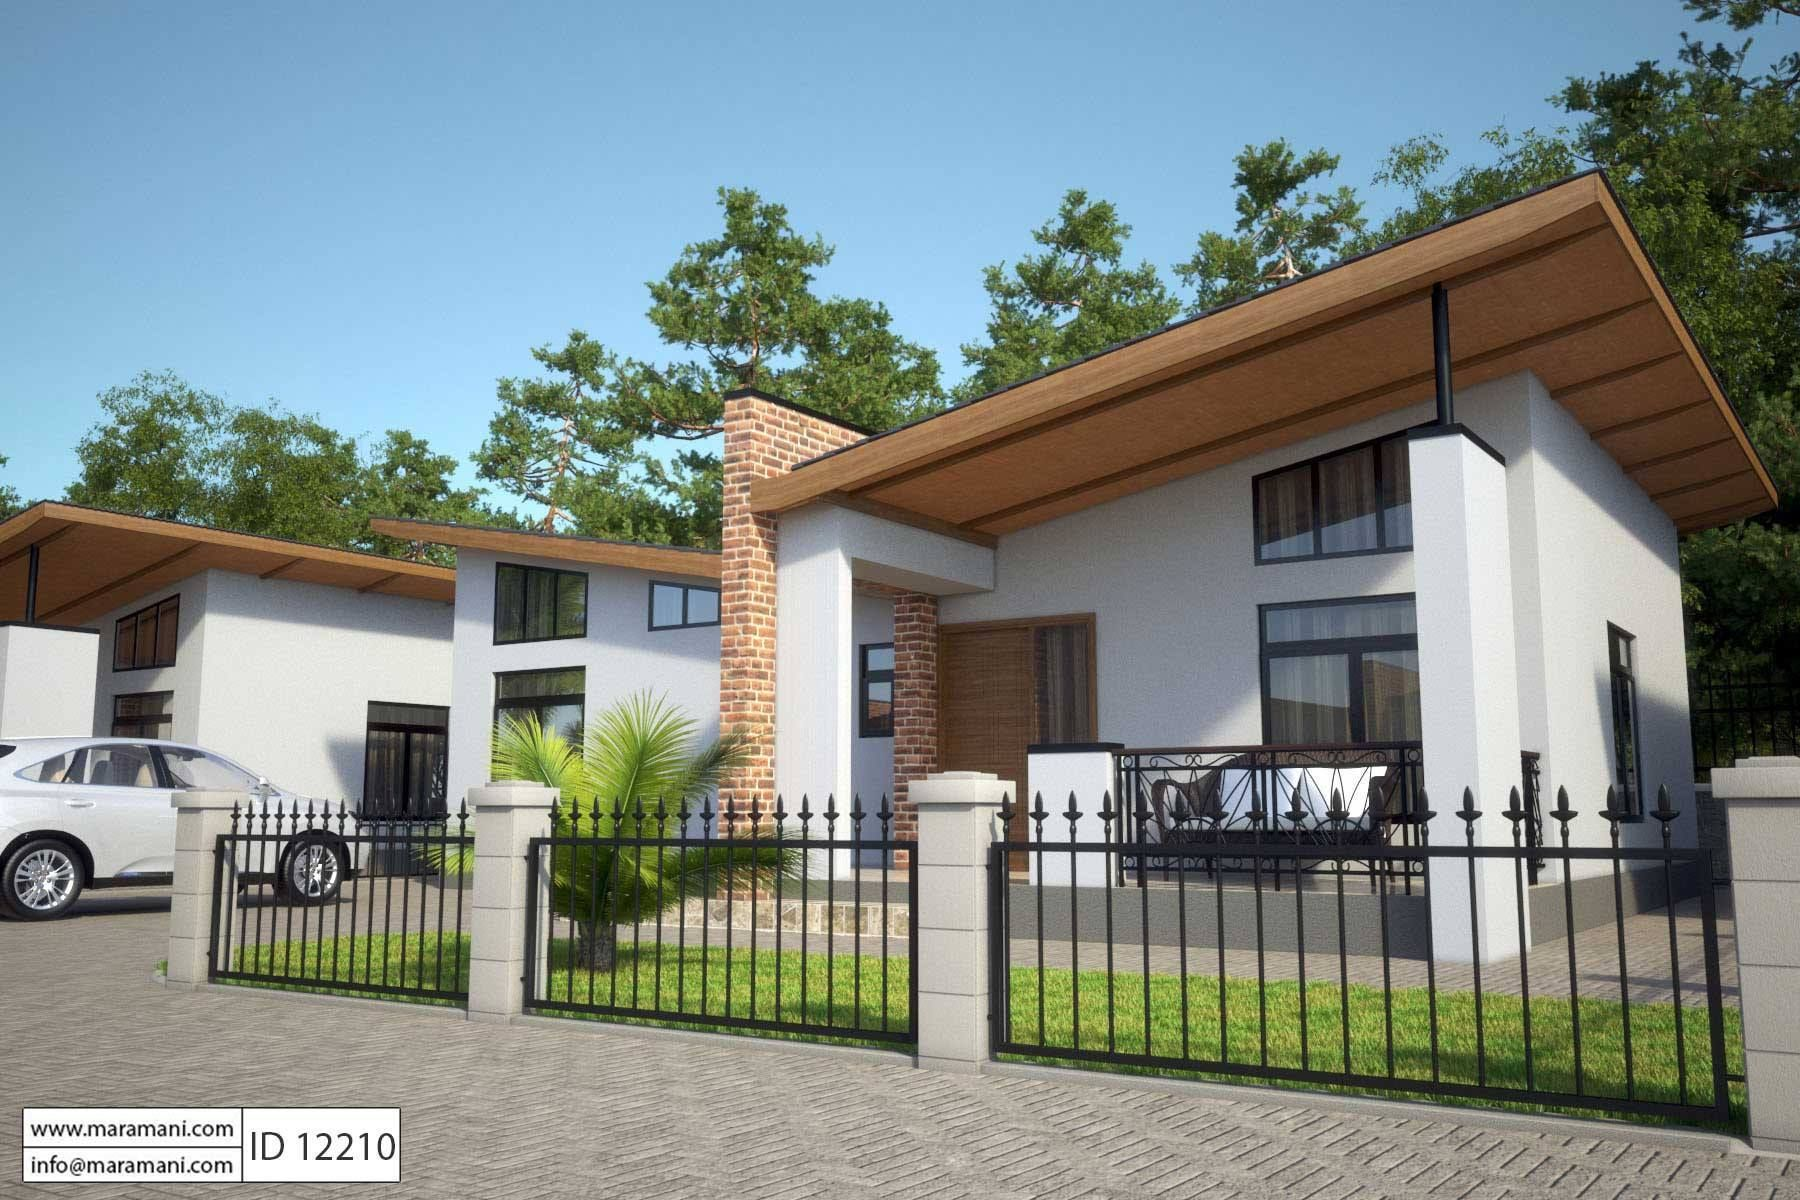 Two Bedroom House Design Pictures Pleasing 2 Bedroom House Plan  Id 12210  House Designsmaramani Design Inspiration